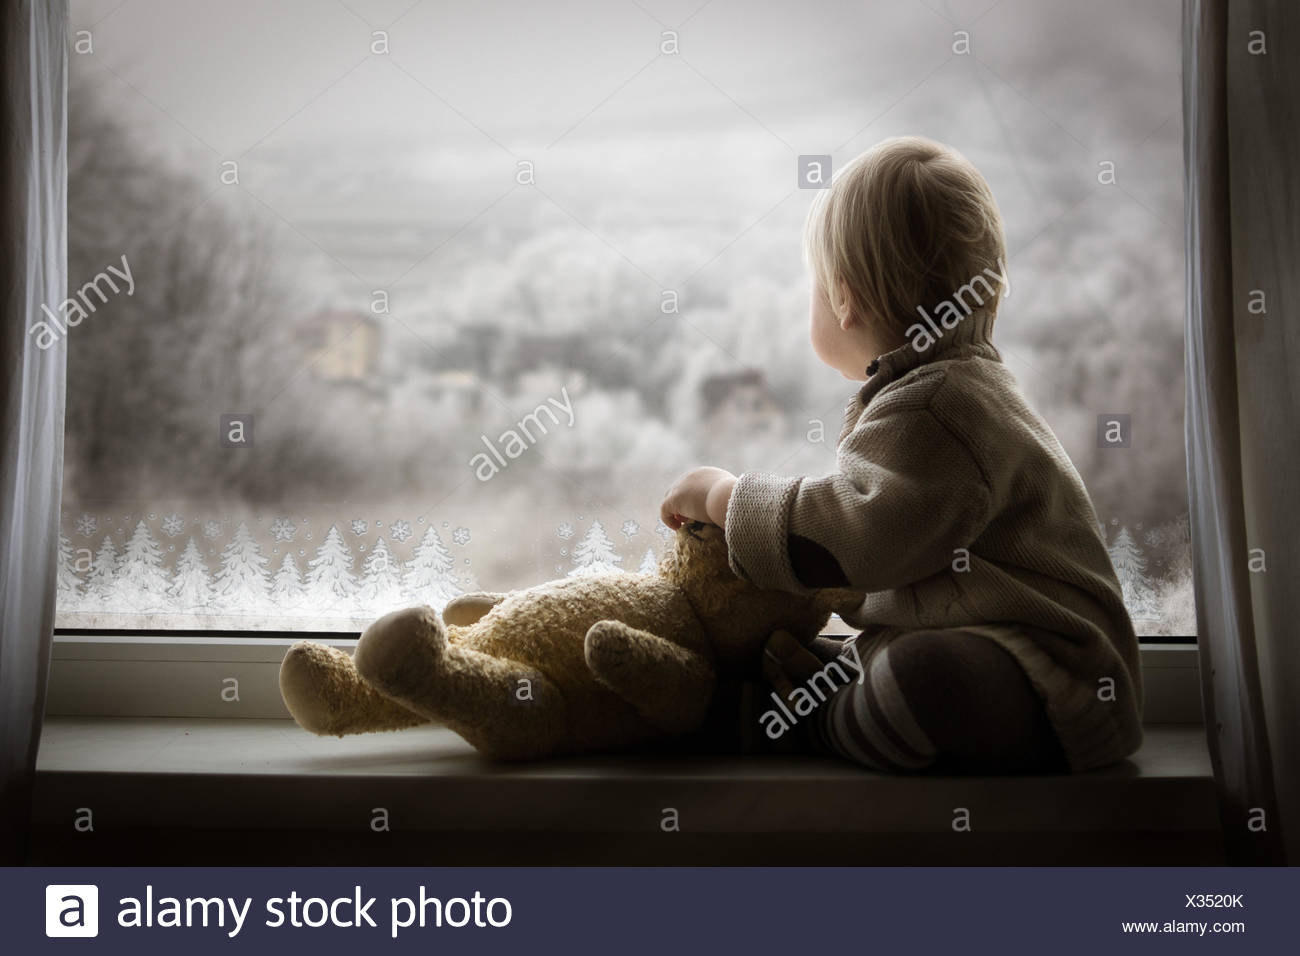 Boy sitting on windowsill with teddy bear and looking at window - Stock Image